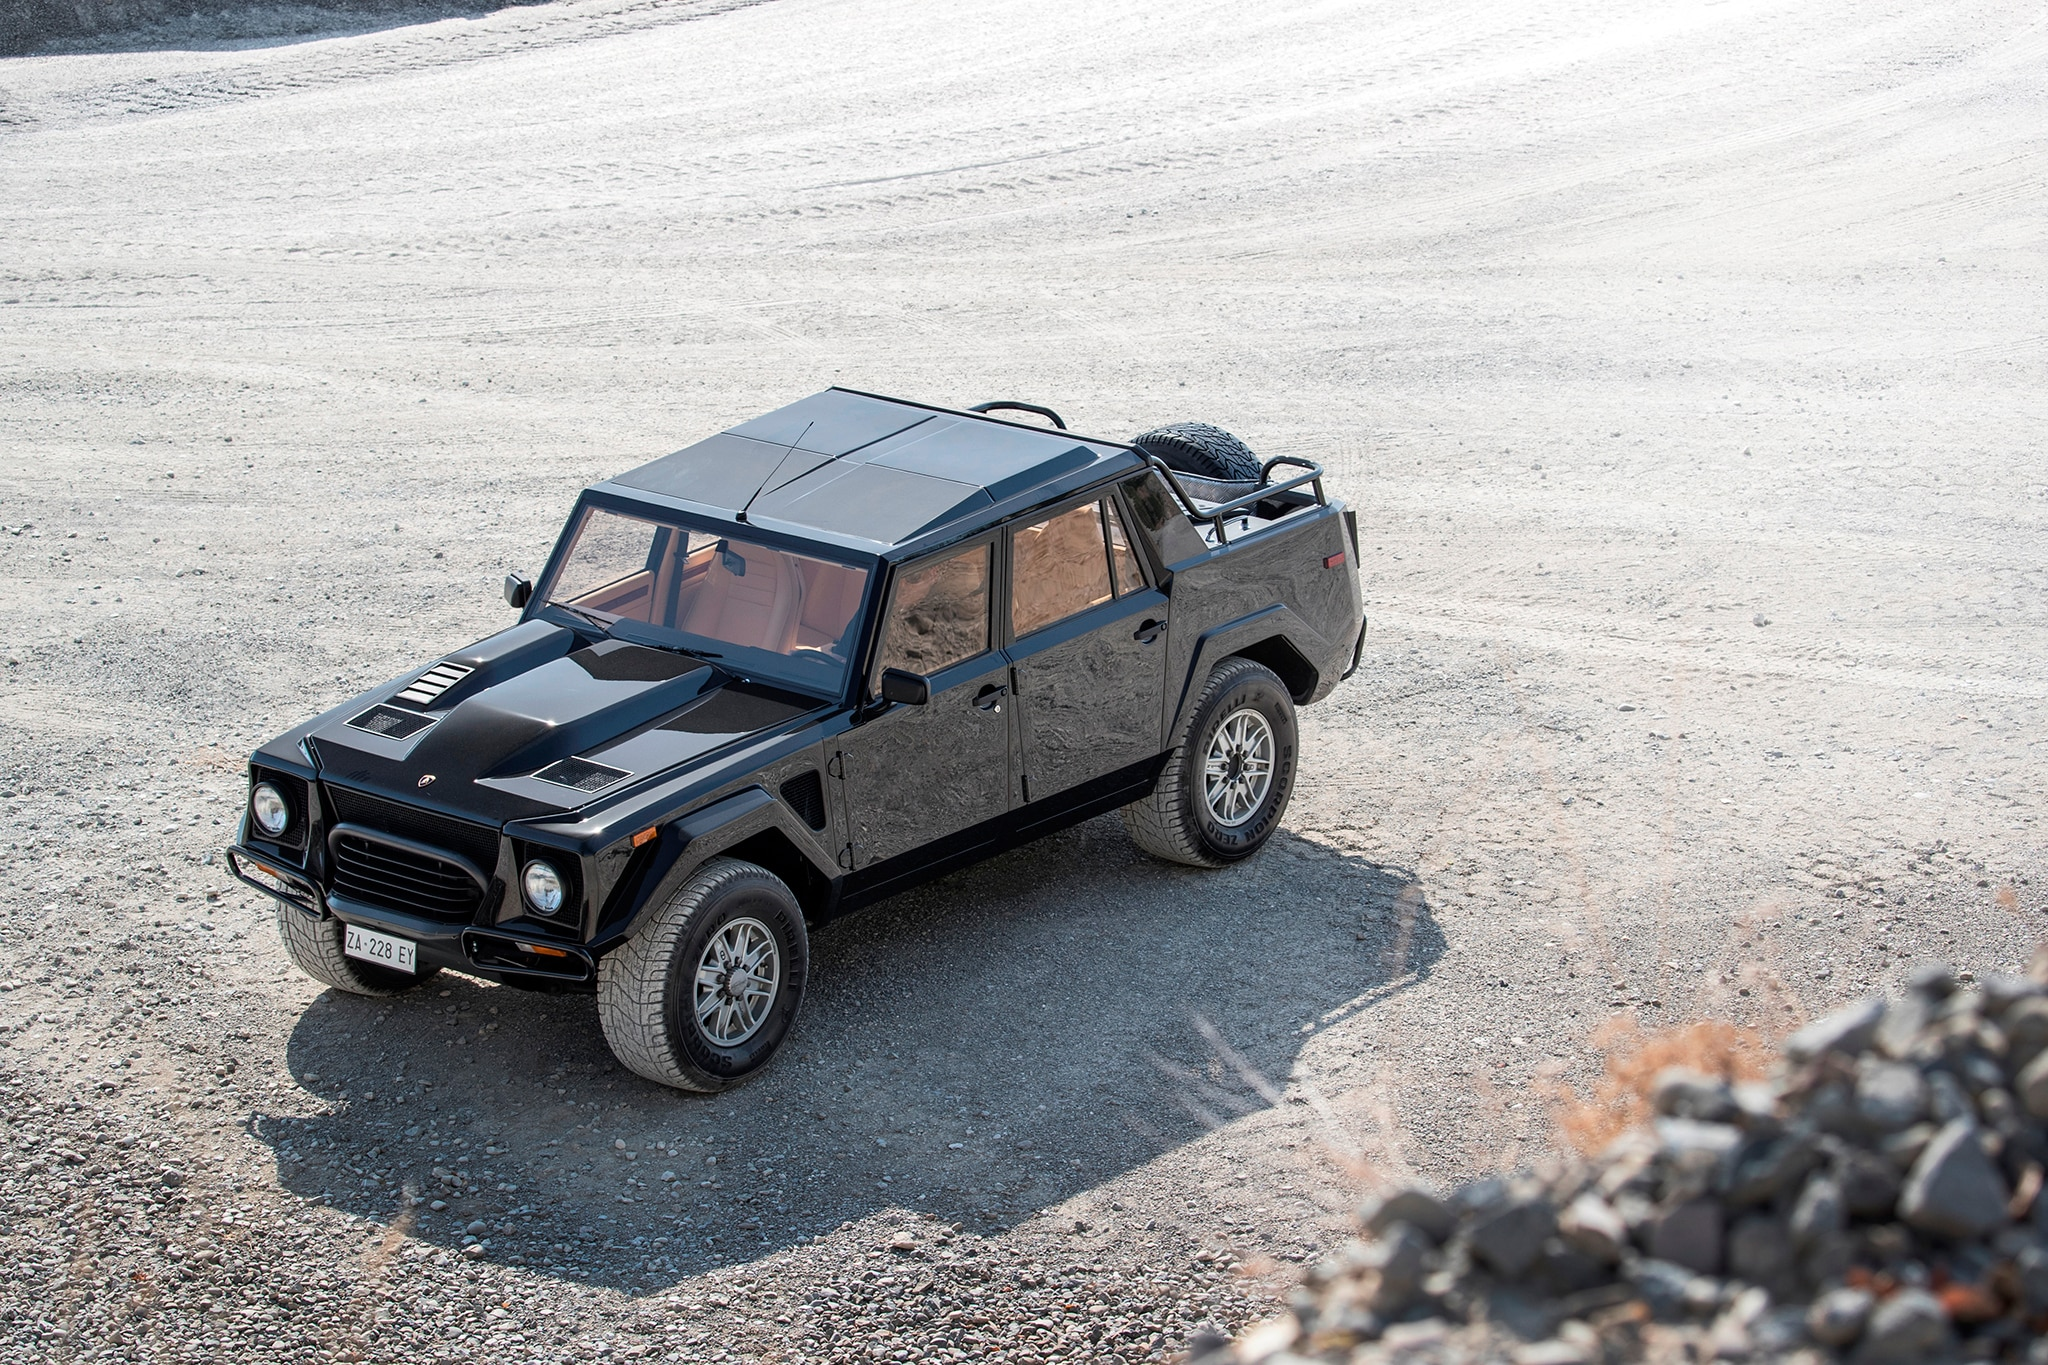 hunter-s-thompson-lamborghini-lm002-goodshoutmedia-5